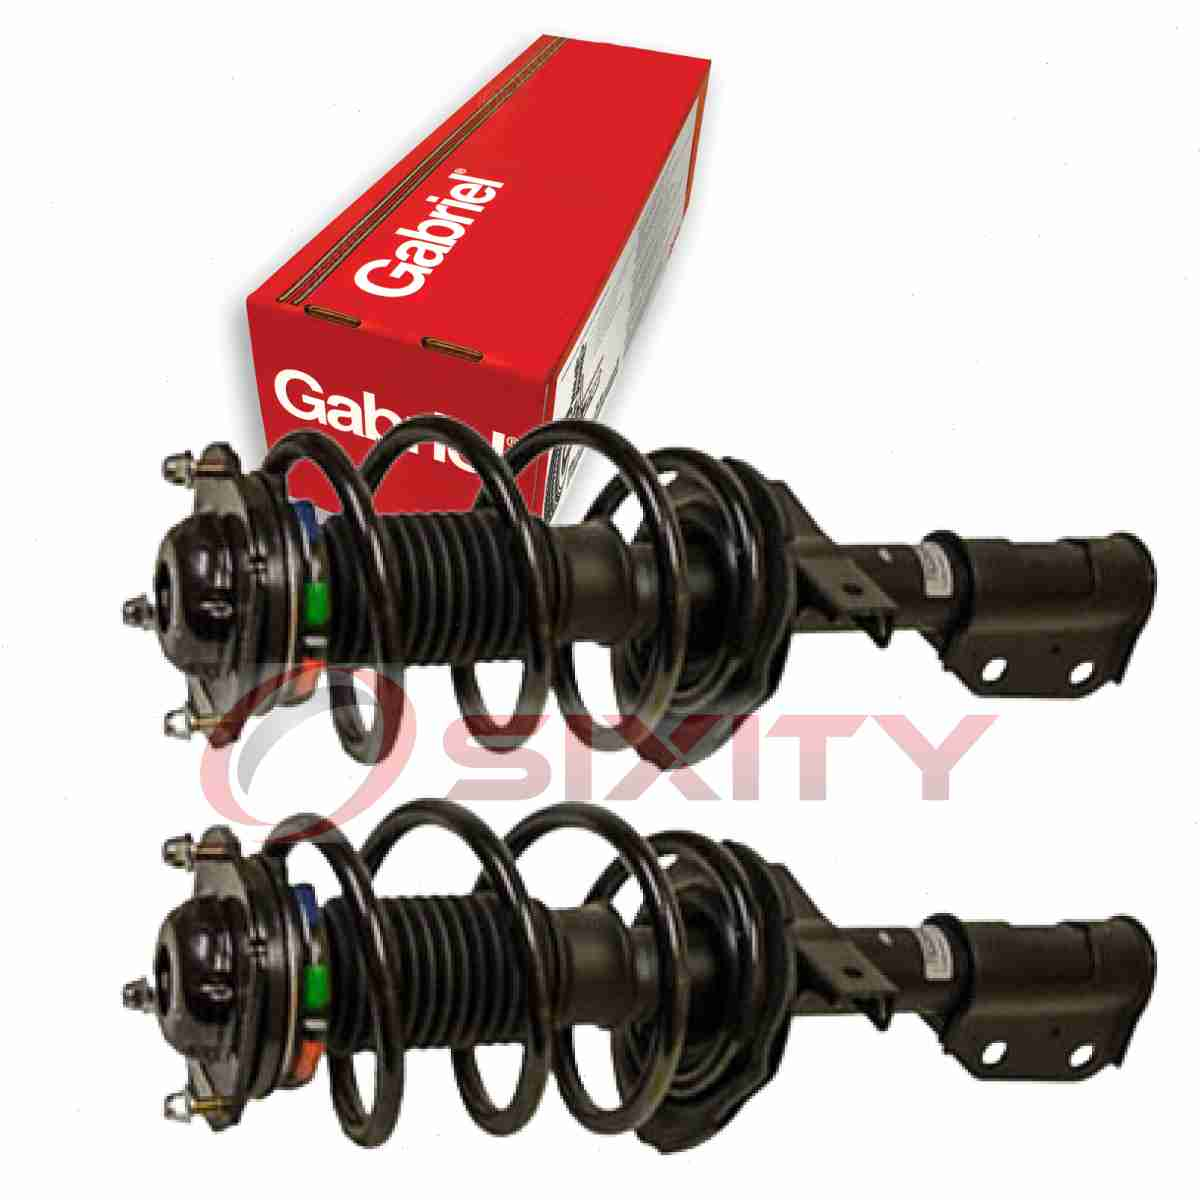 Front Complete Struts /& Rear Bare Shock Absorbers Compatible with 2008-2012 Buick Enclave Set of 4